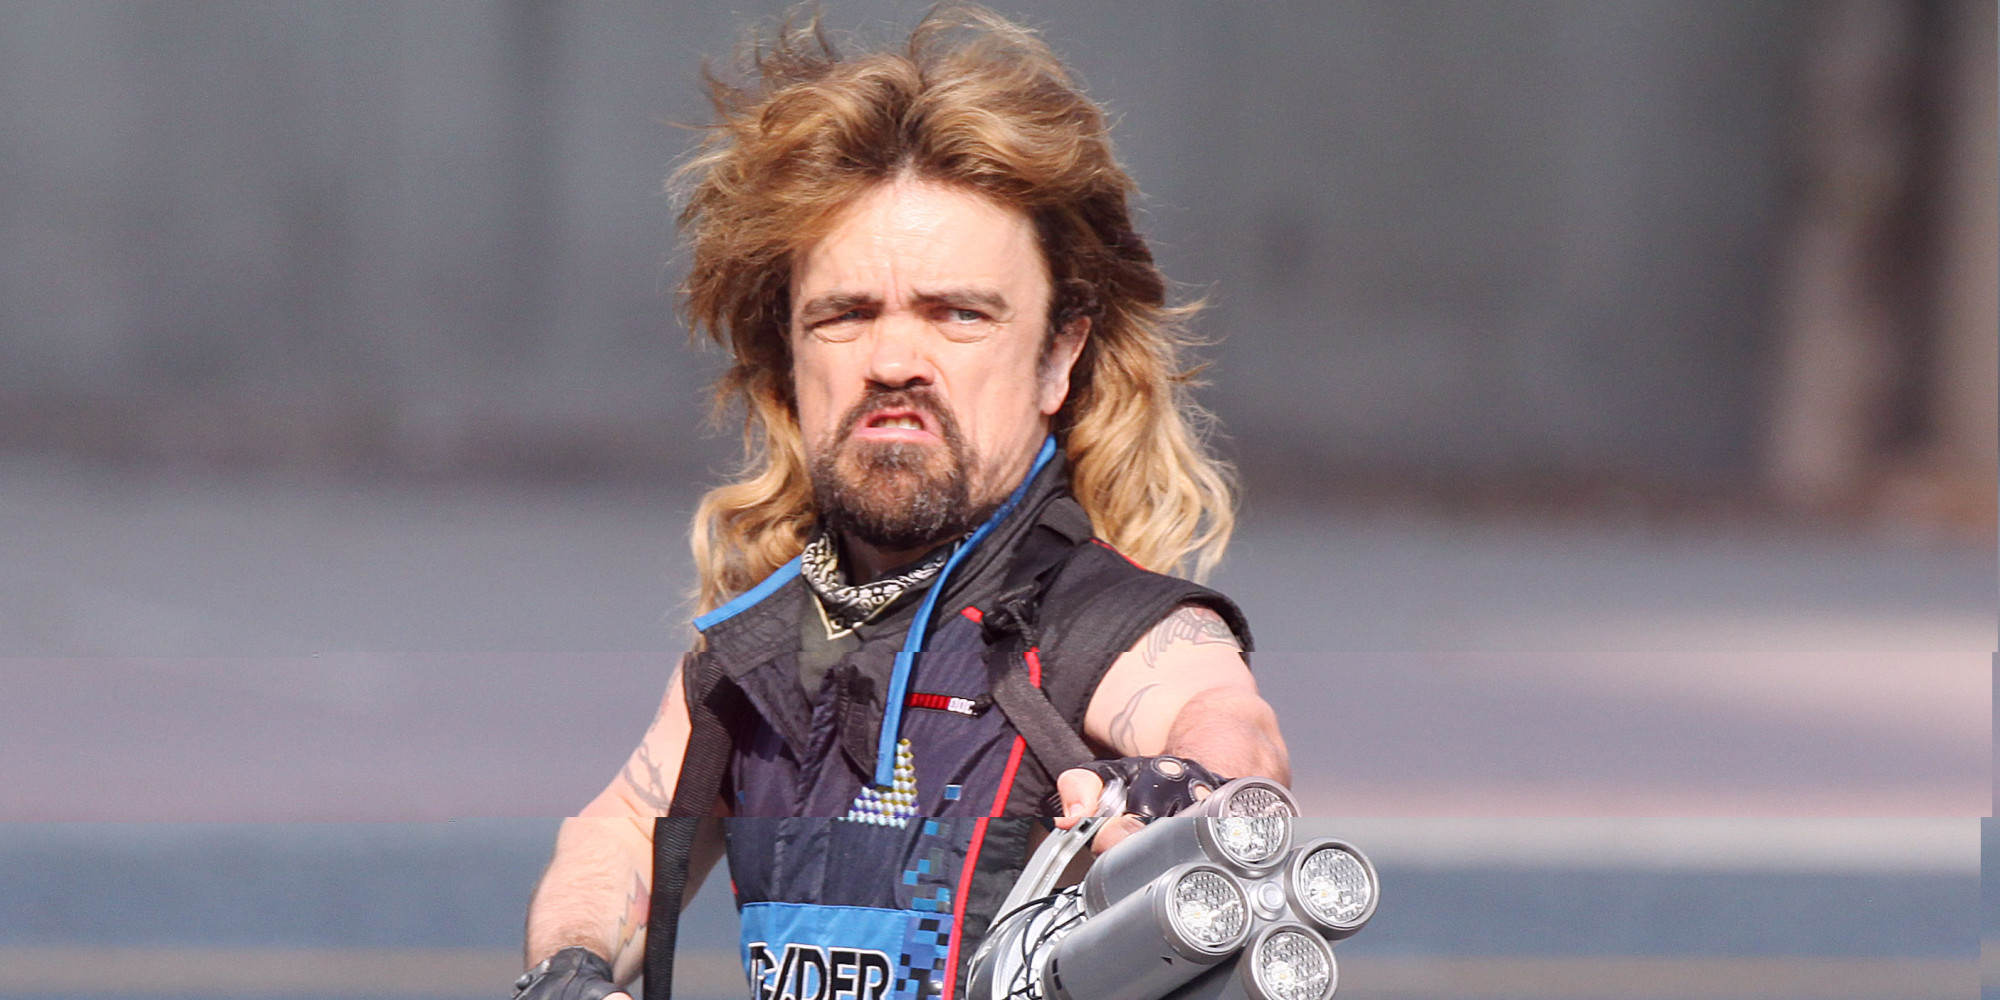 Peter Dinklage With A Mullet Amp Laser Cannon On The Set Of Pixels Is Everything